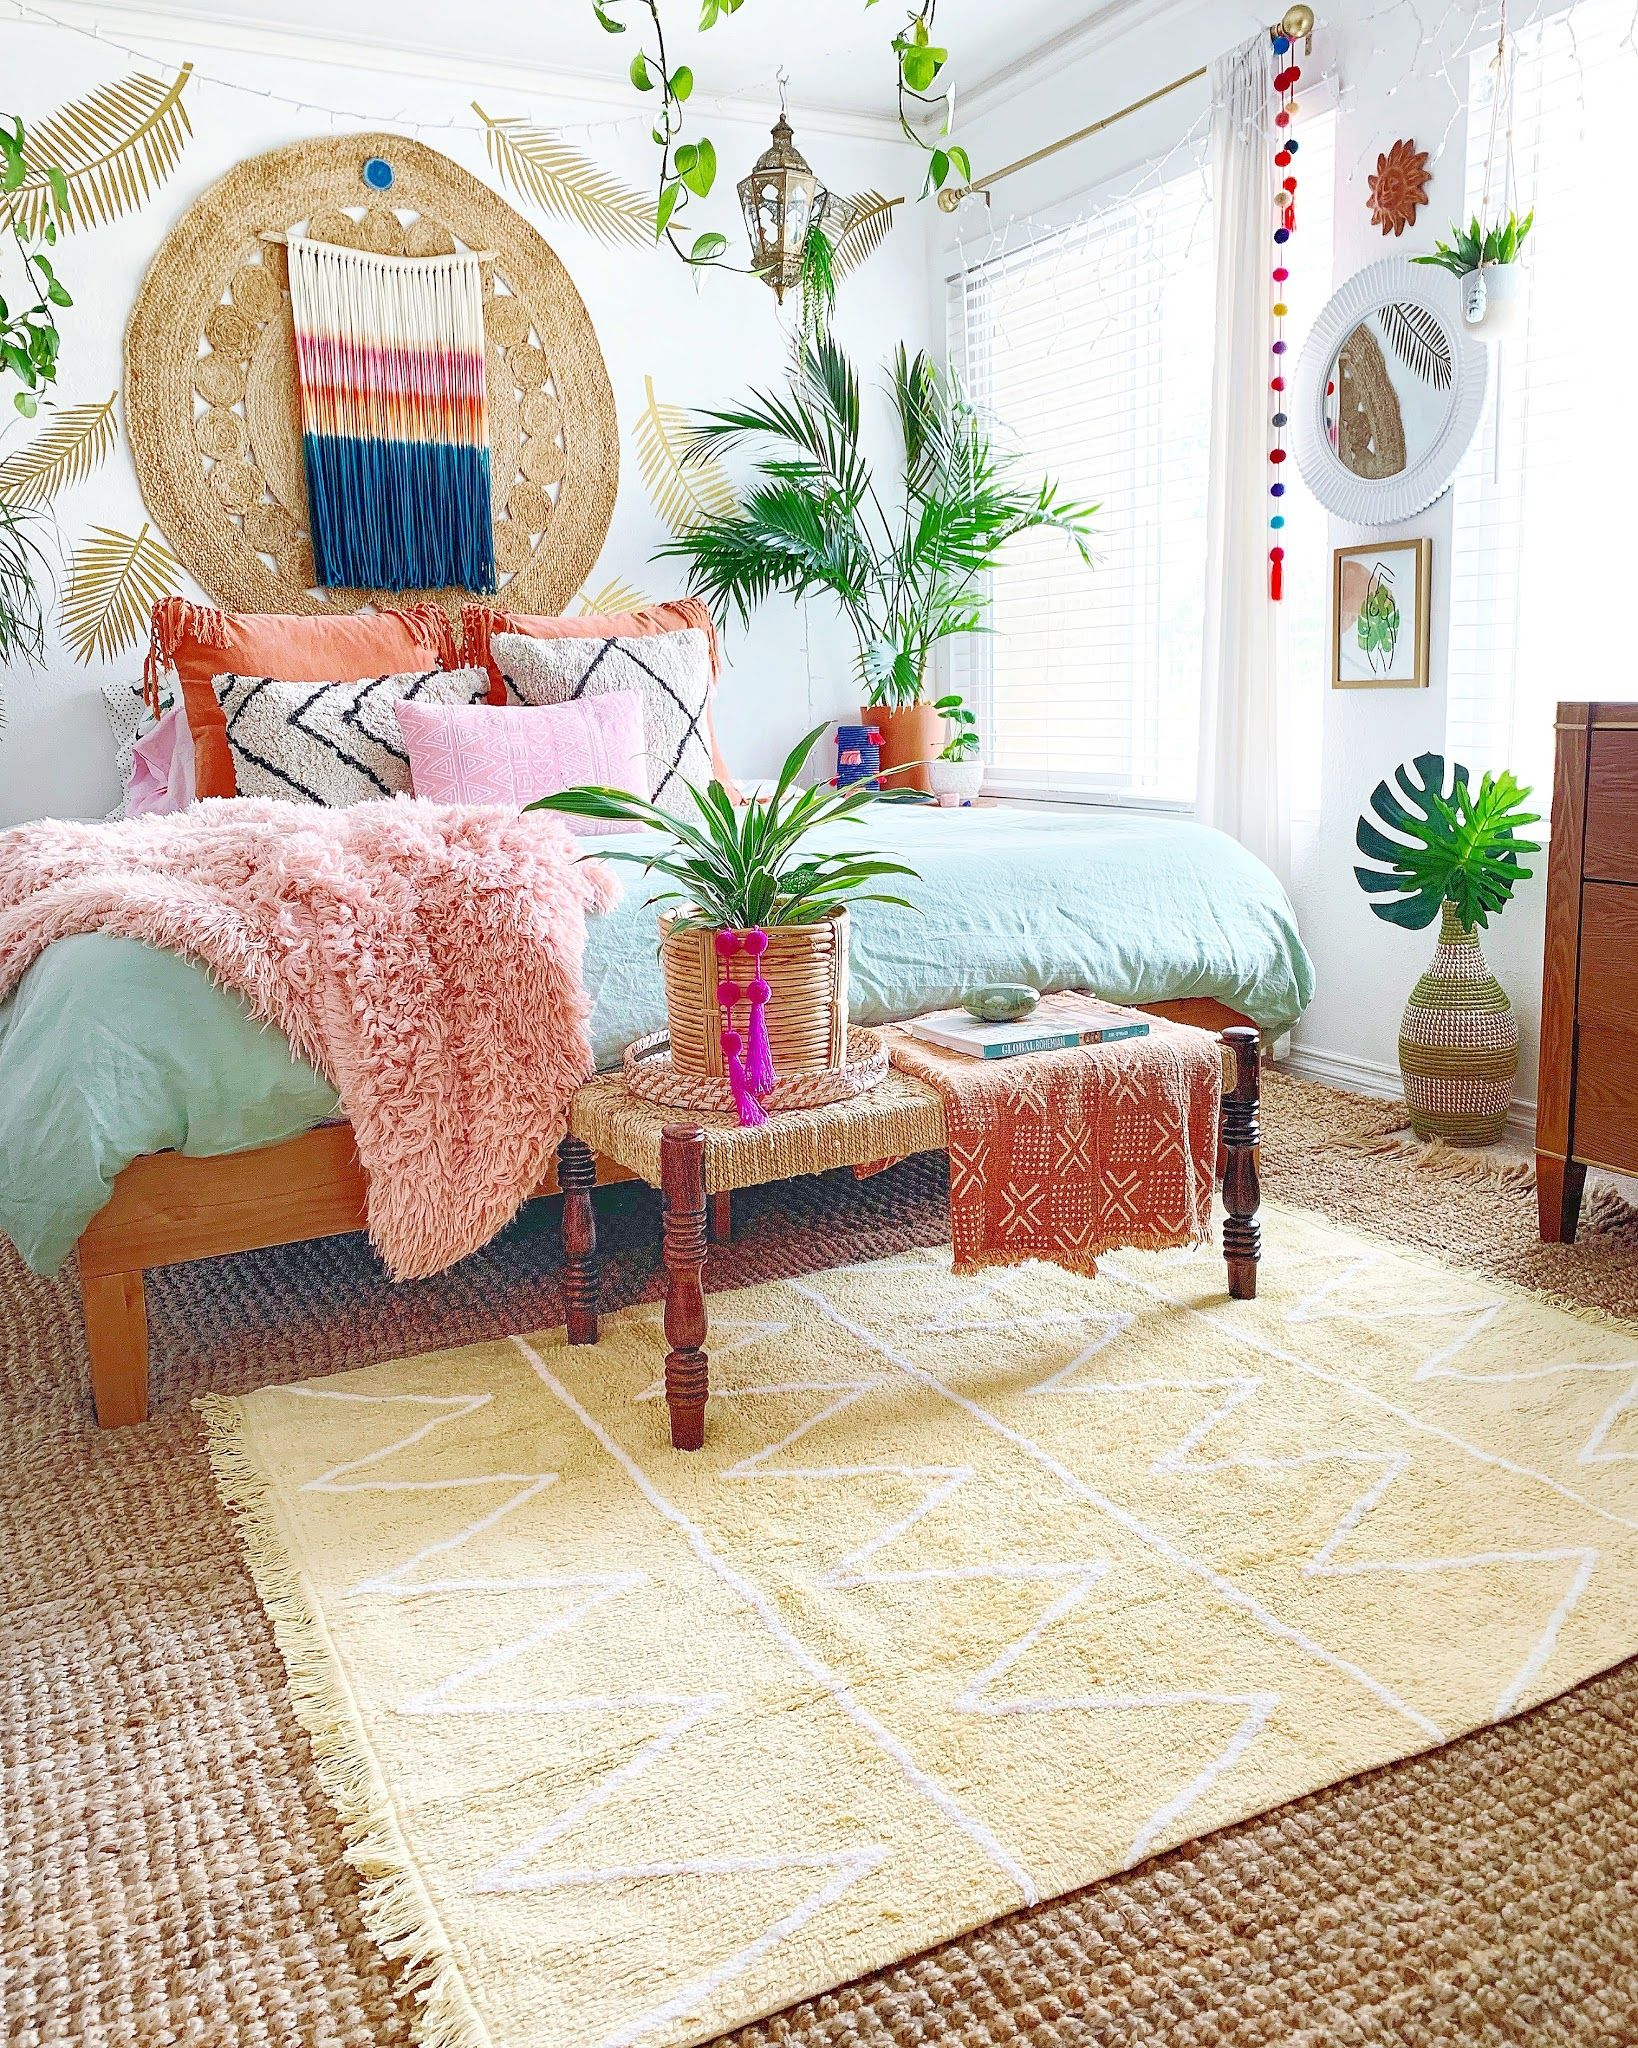 Boho Chic Bedroom Decor That Inspires Creativity Cool Ideas For A